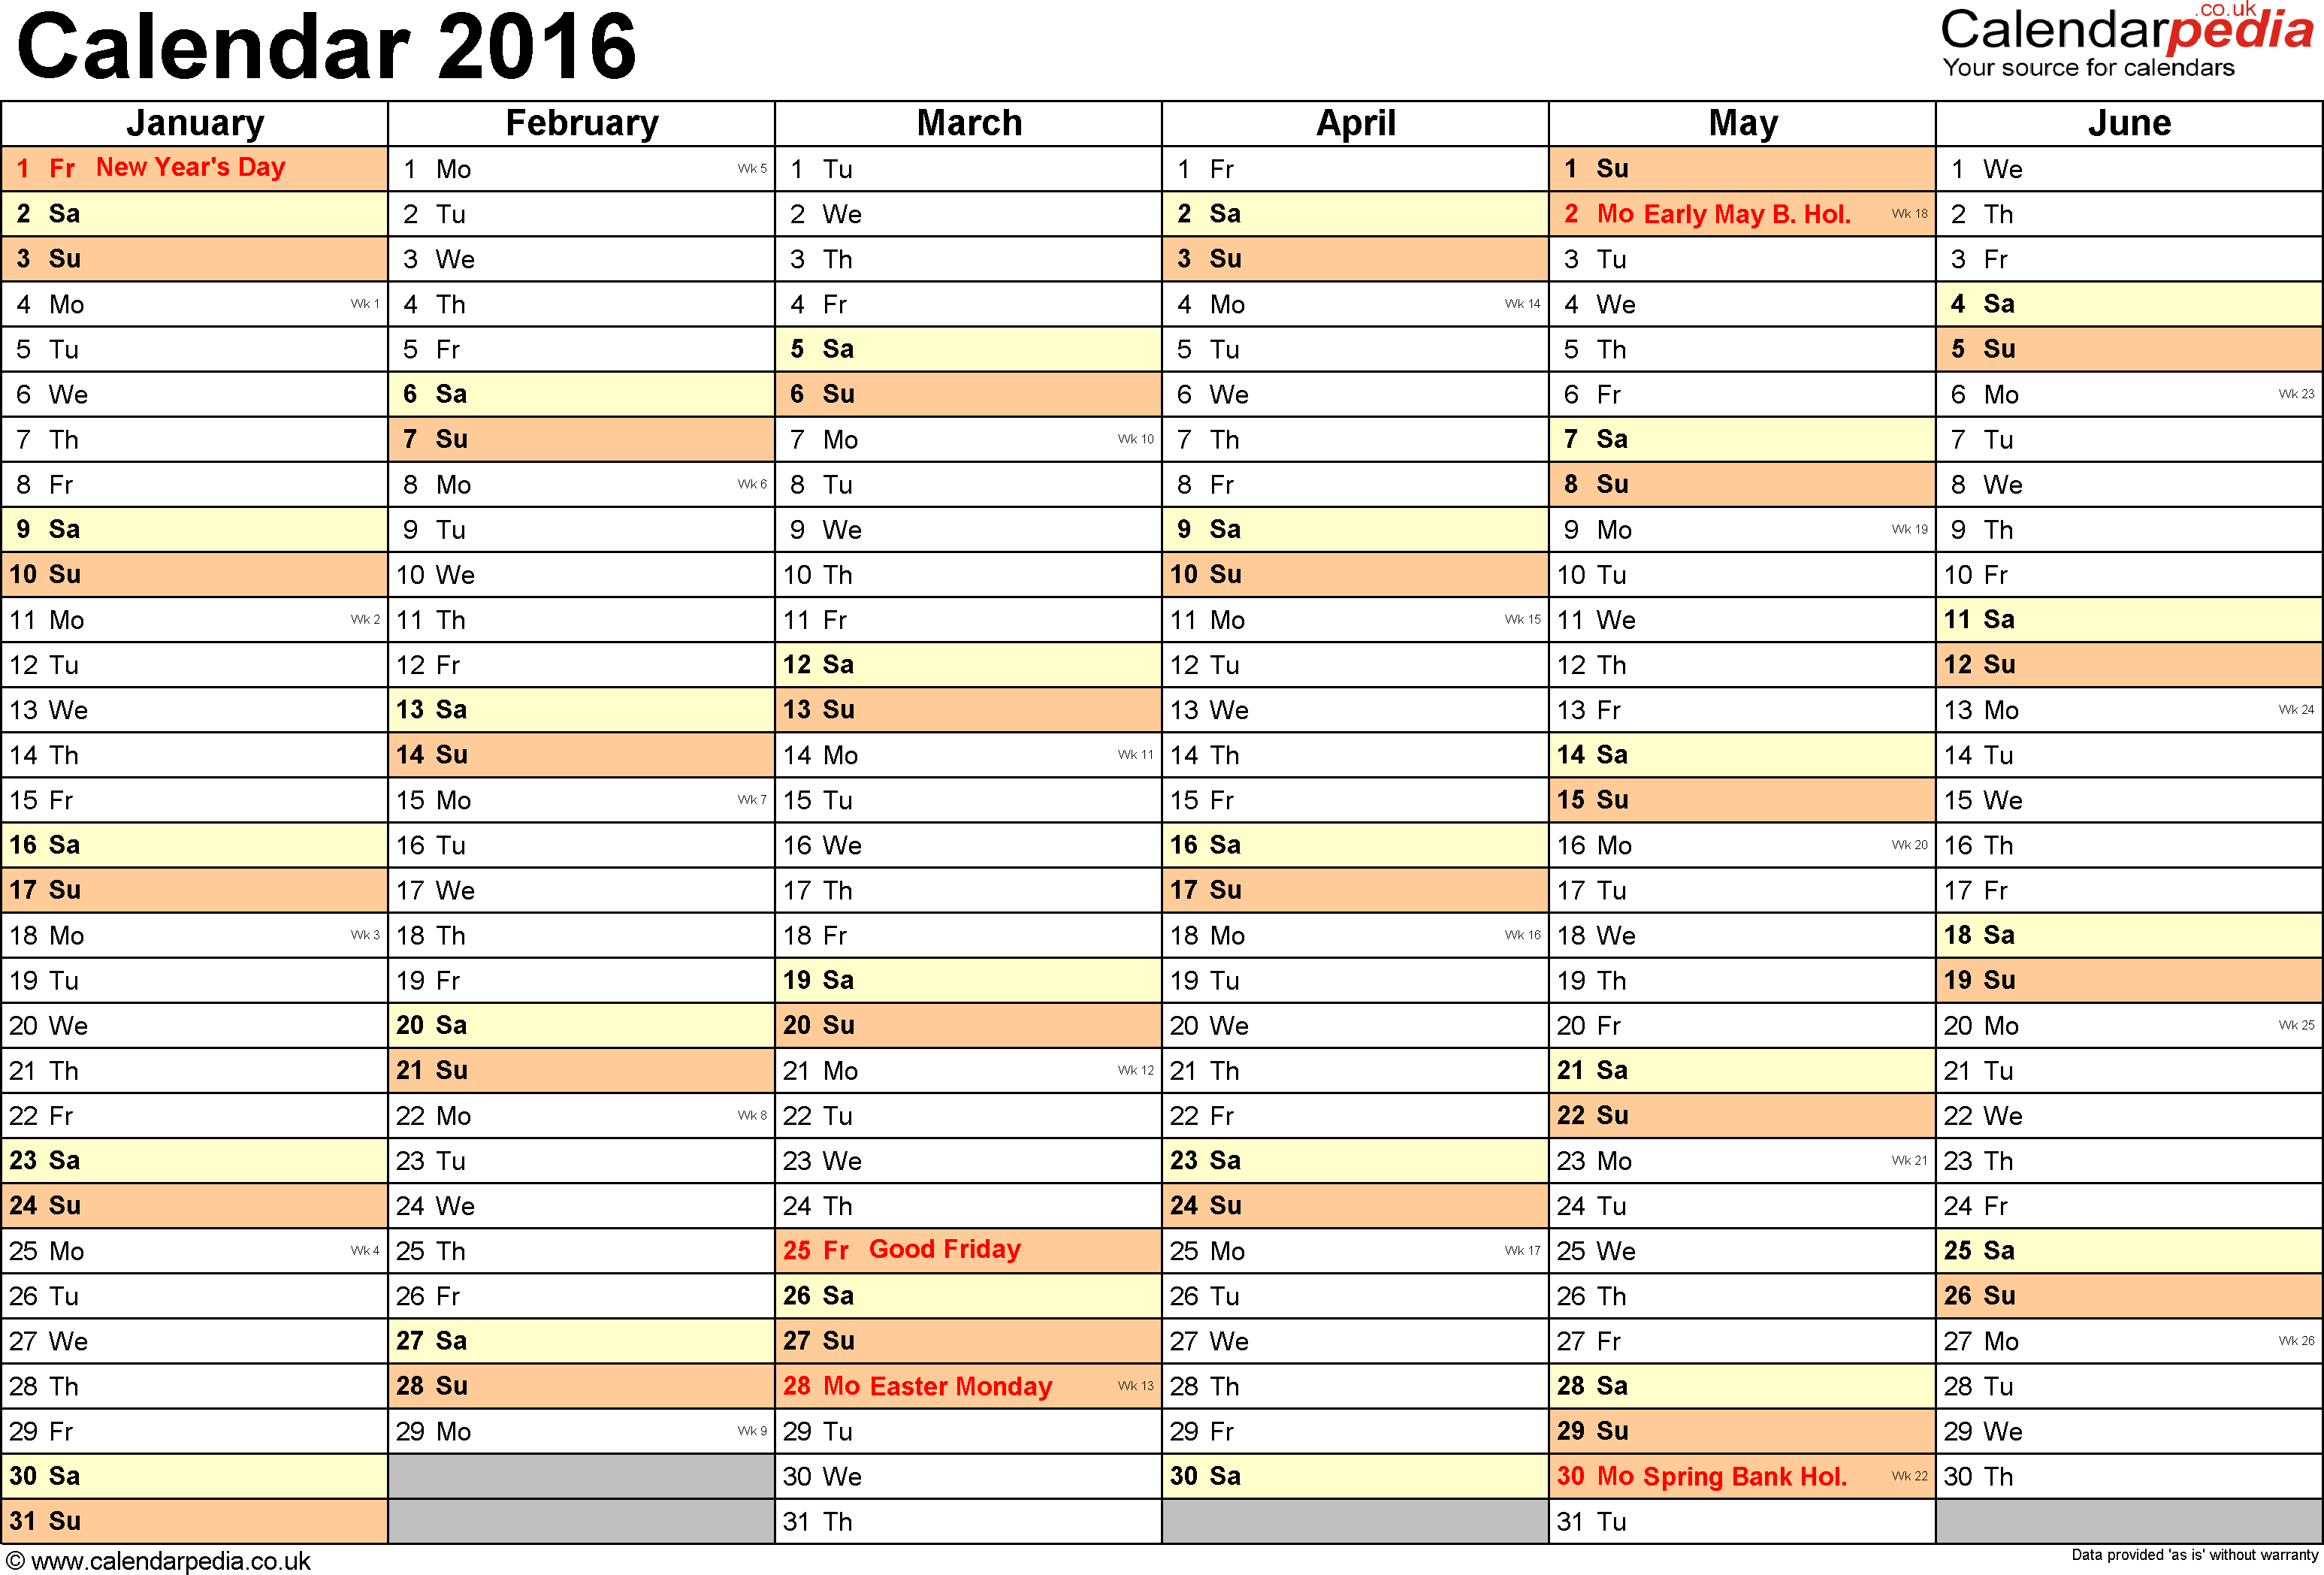 Template 3: Yearly calendar 2016 as Excel template, landscape orientation, 2 pages, months horizontally, days vertically, with UK bank holidays and week numbers